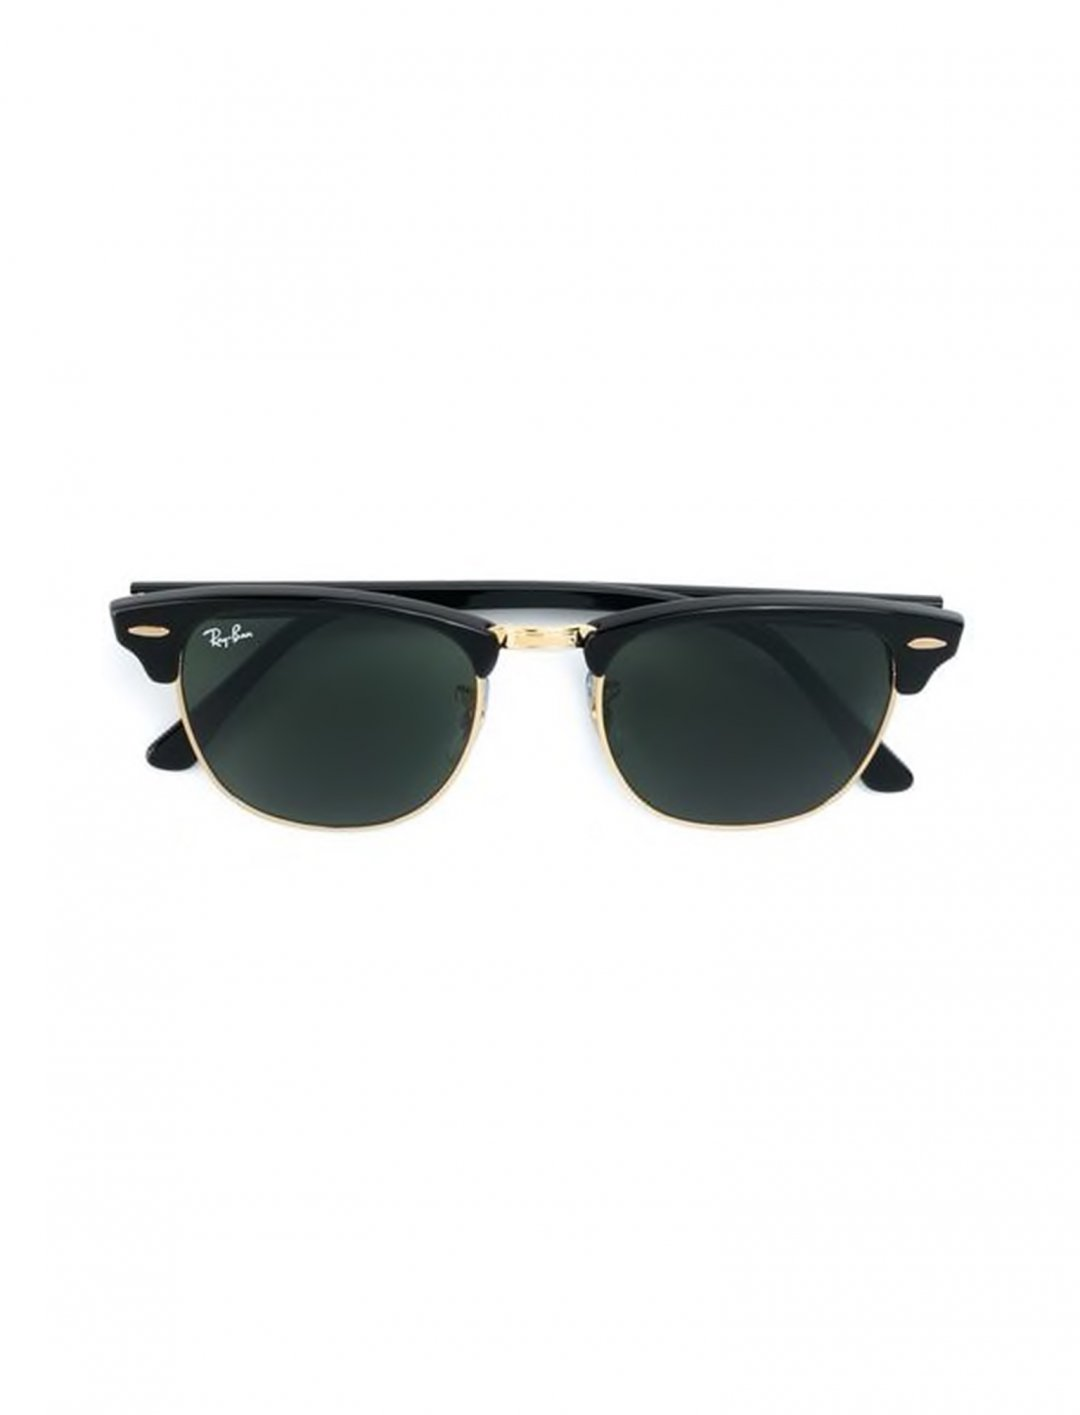 "Swizz Beatz' Sunglasses {""id"":16,""product_section_id"":1,""name"":""Accessories"",""order"":15} Ray-Ban"